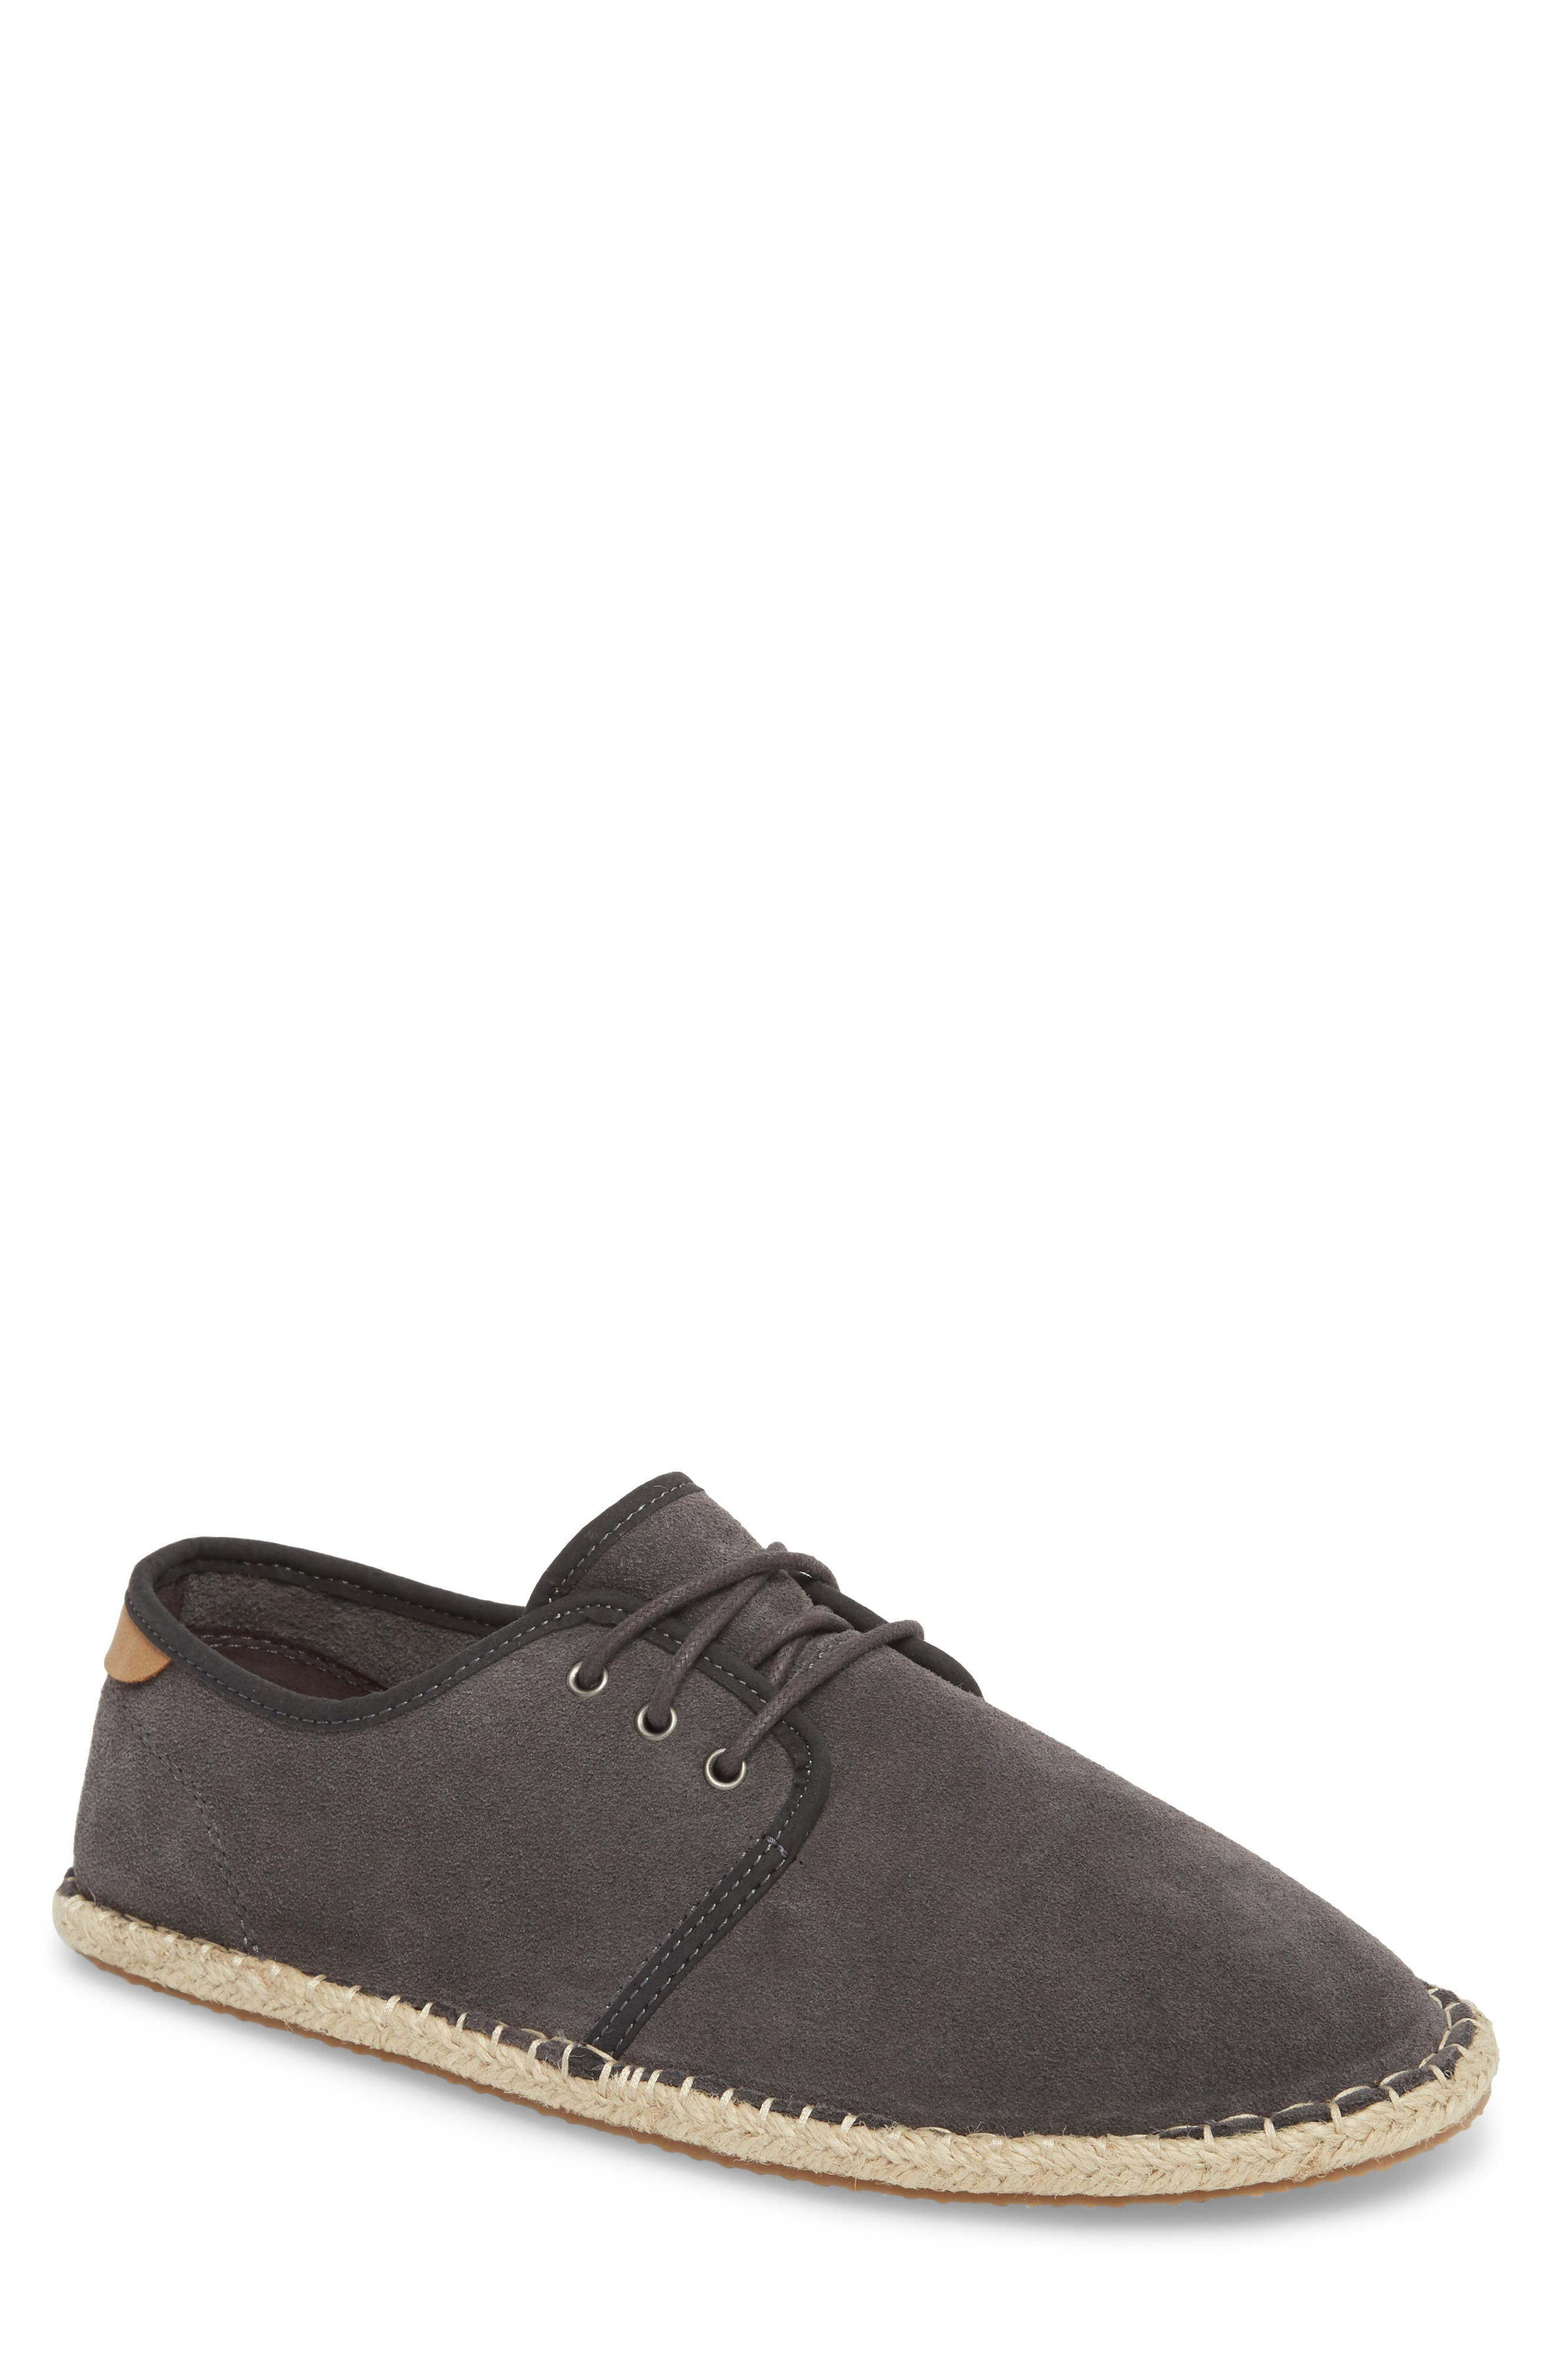 Diego Deconstructed Derby,                             Main thumbnail 1, color,                             FORGED IRON GREY SUEDE